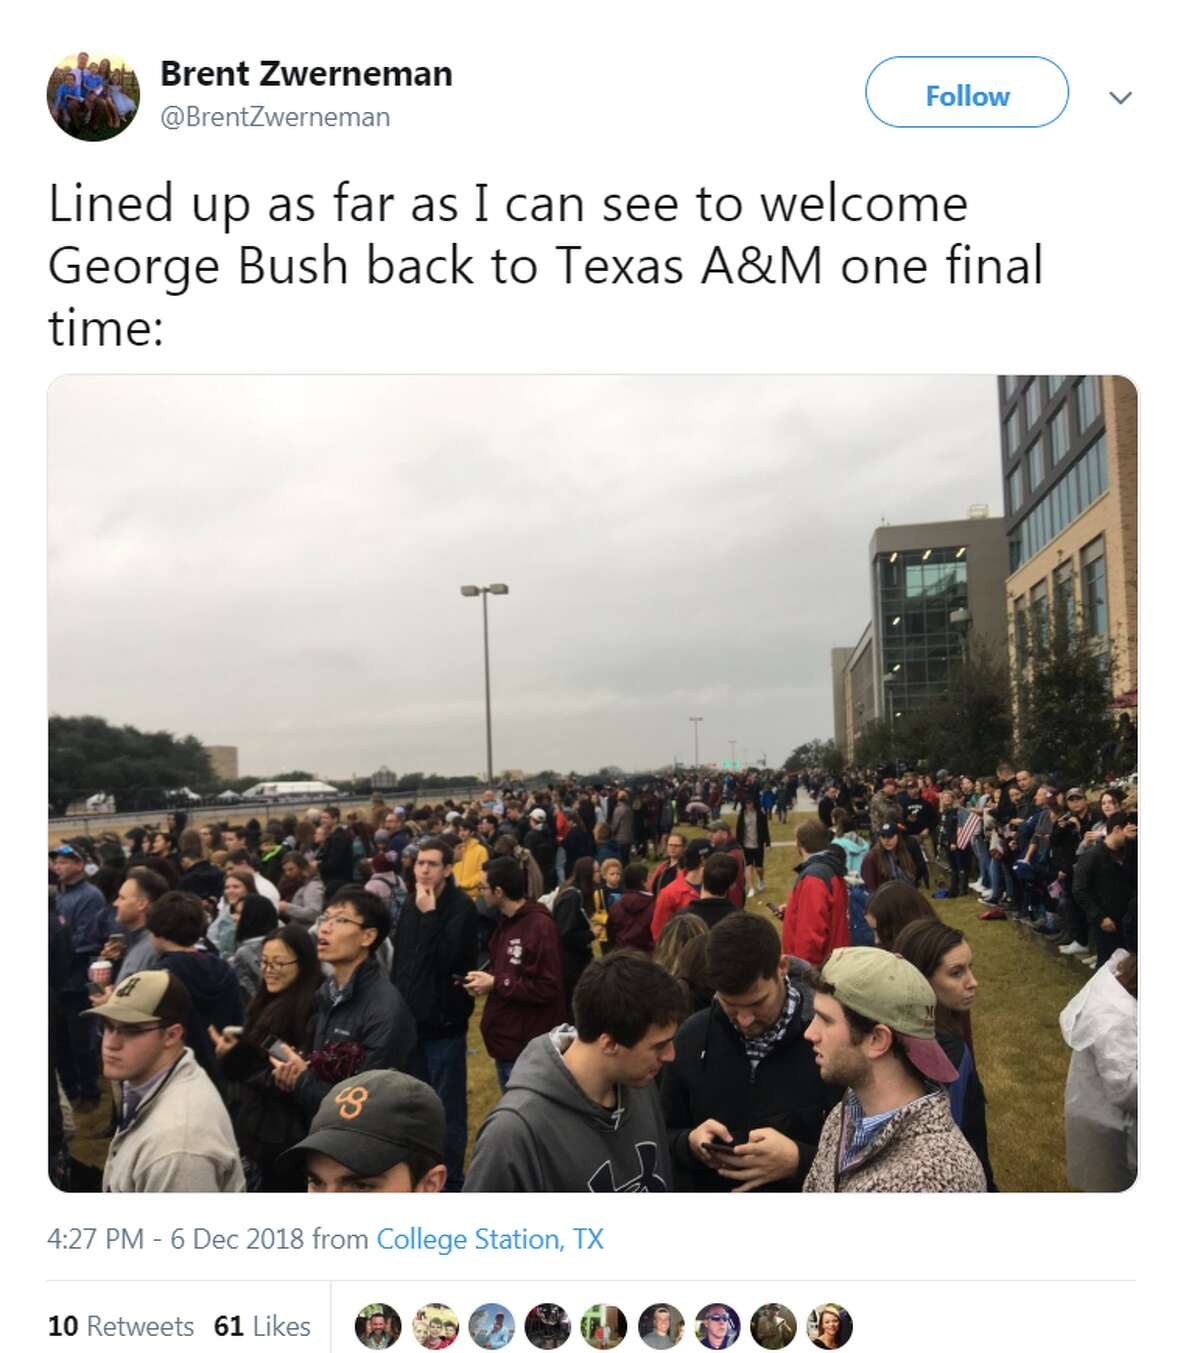 @BrentZwerneman Lined up as far as I can see to welcome George Bush back to Texas A&M one final time: